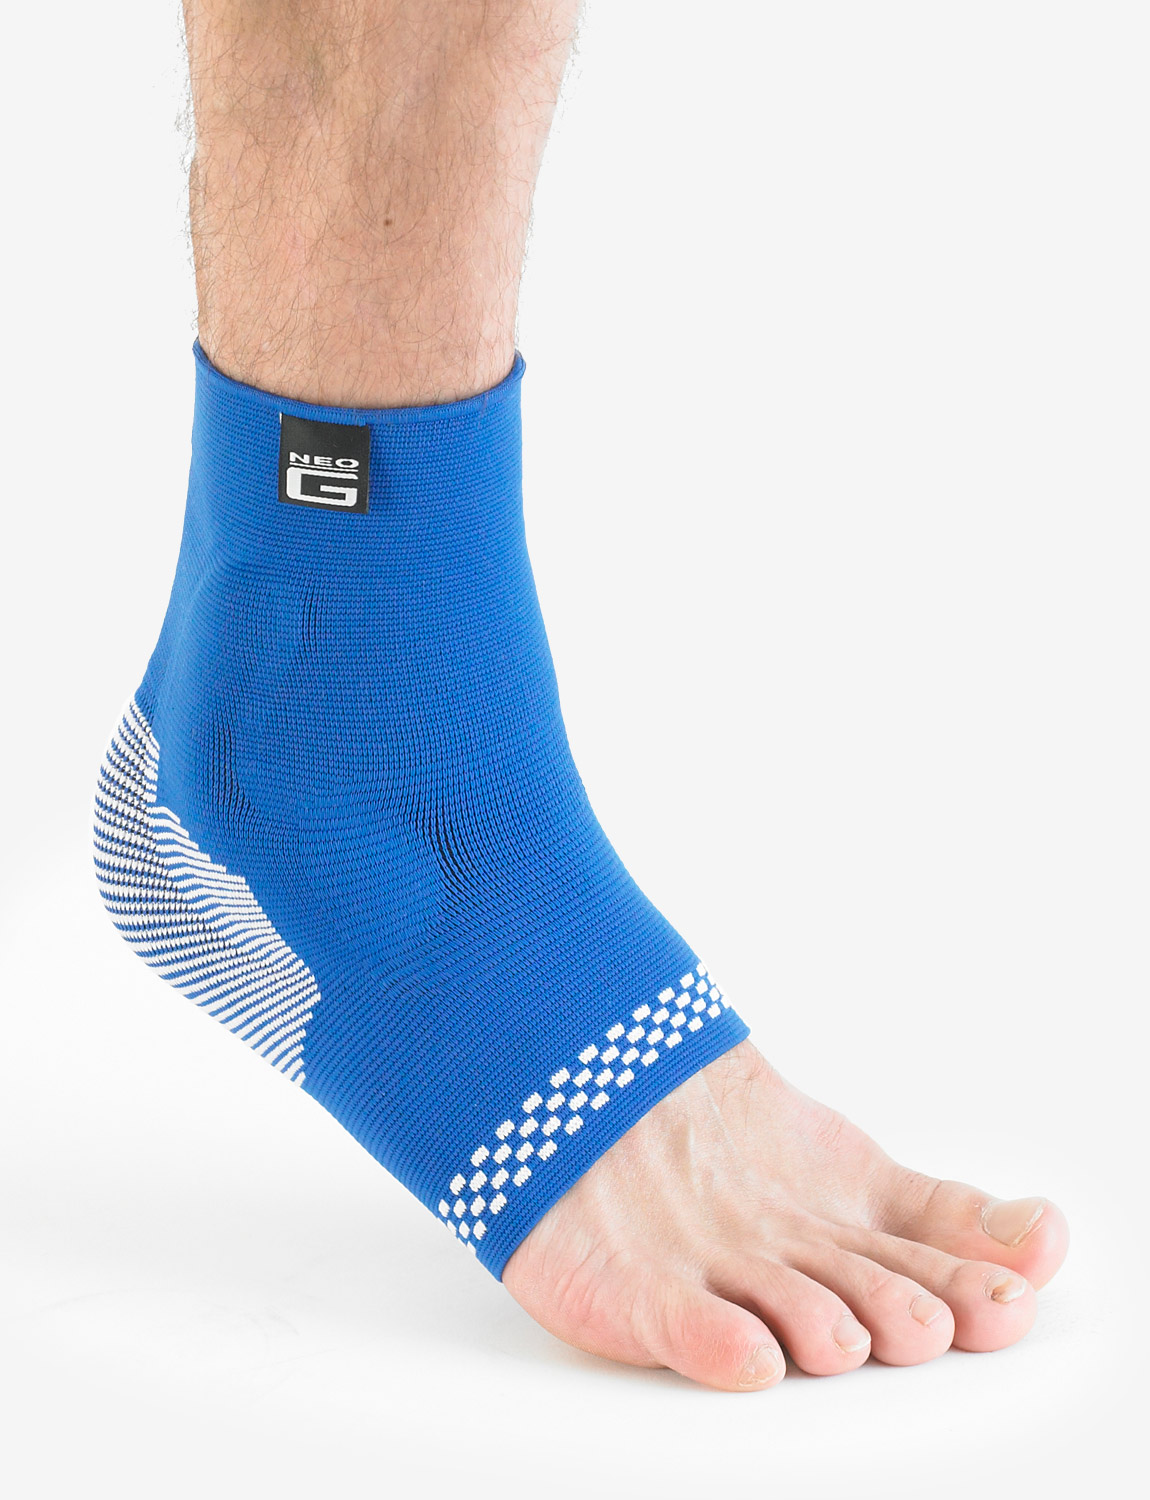 456 - AIRFLOW PLUS ANKLE SUPPORT WITH SILICONE JOINT CUSHIONS